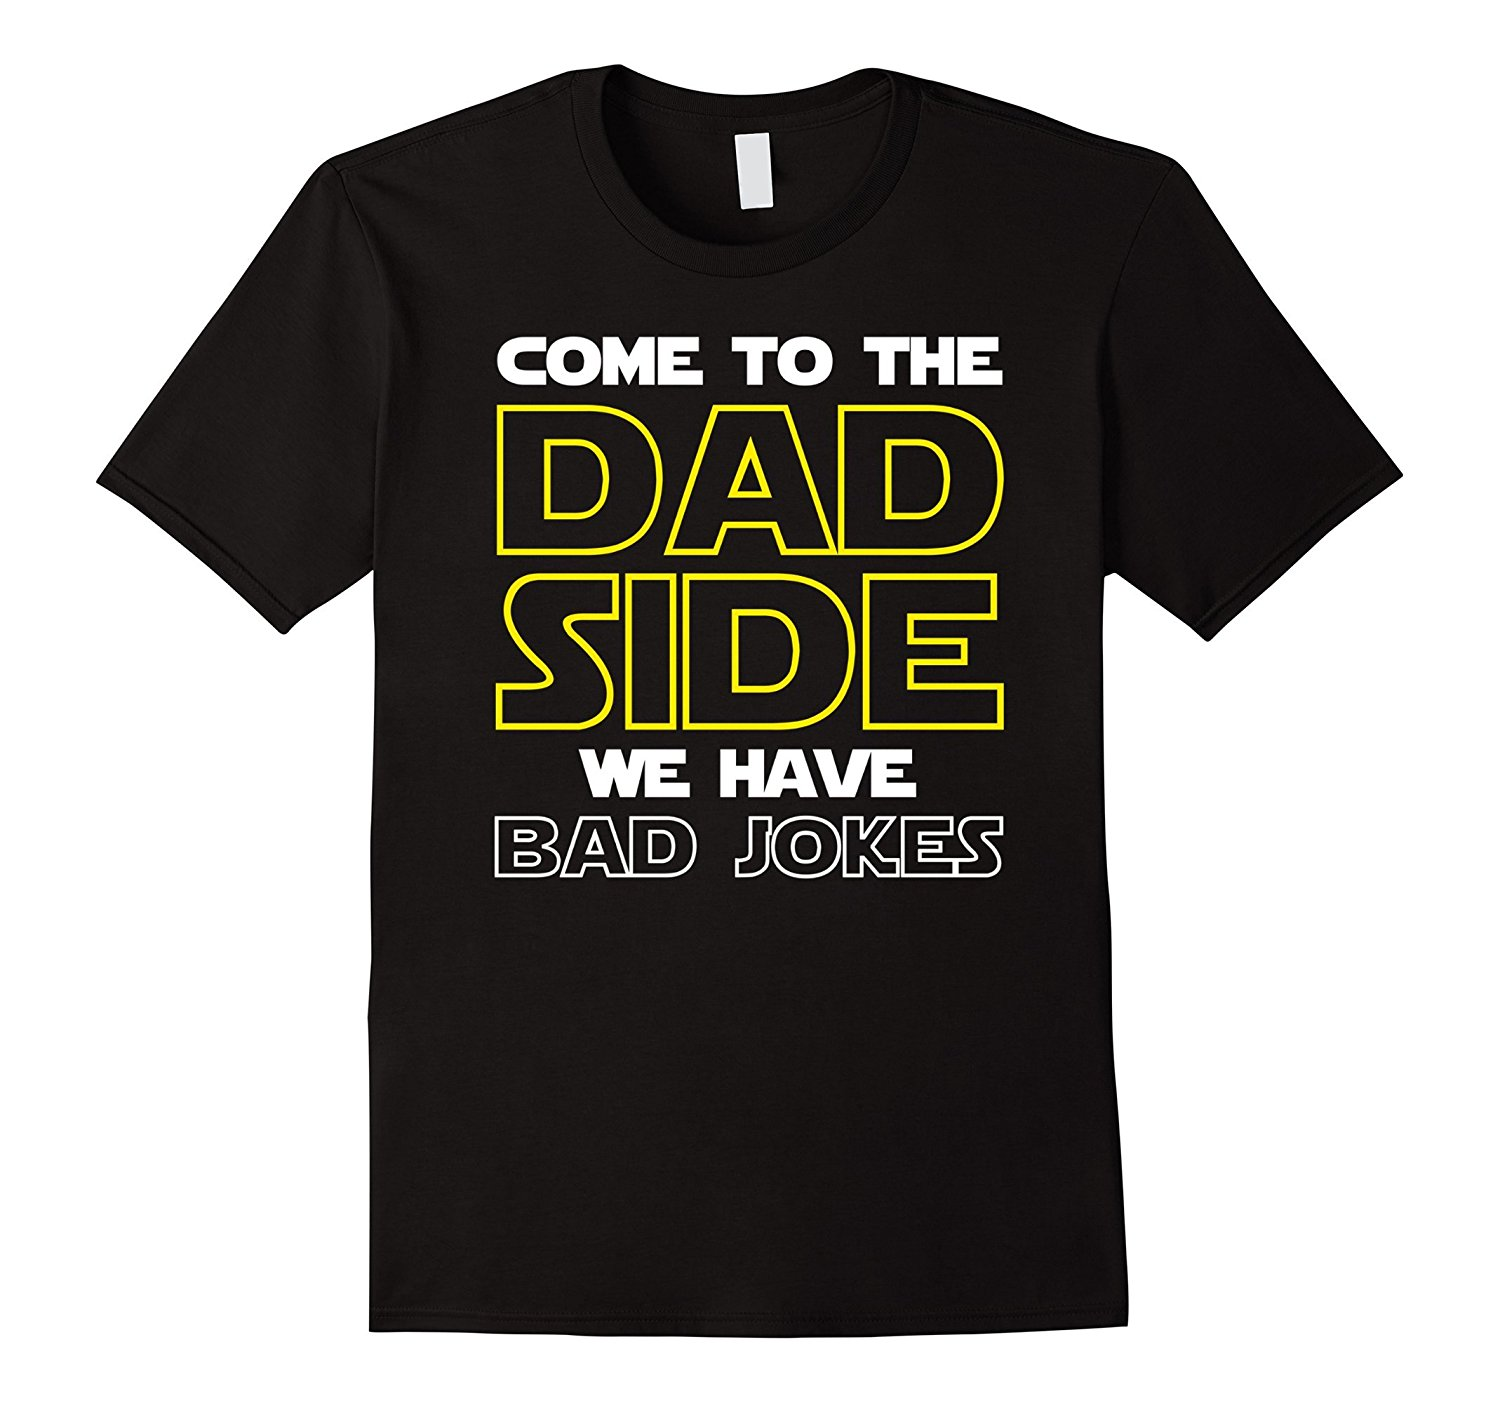 Come To The Dad Side We Have Bad Jokes T Shirt Funny Father T-Shirts 2017 Brand Clothes Slim Fit Printing Middle Aged Top Tee